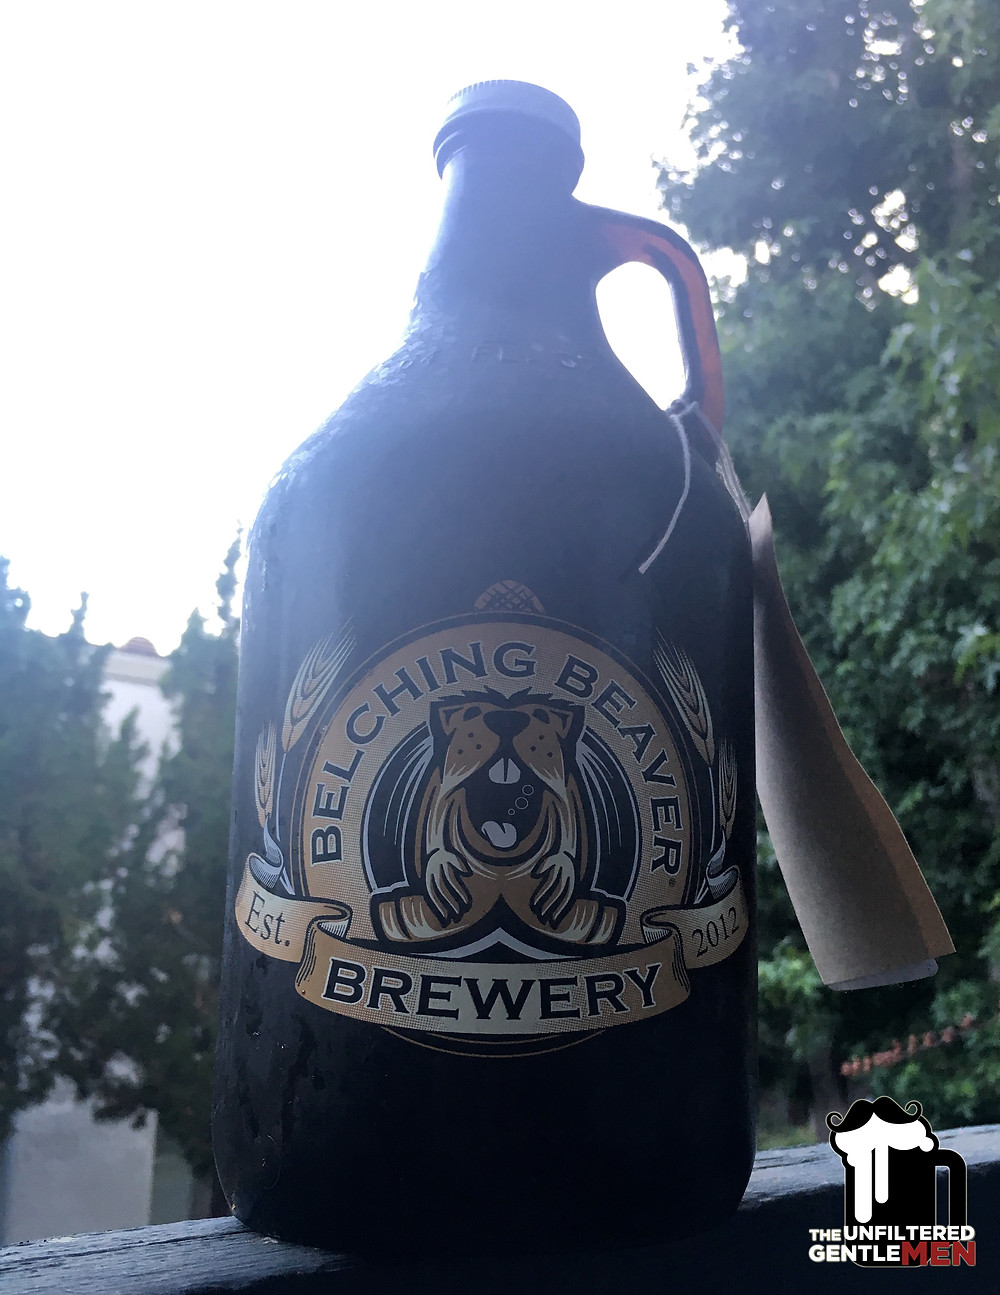 The Unfiltered Gentlemen review Belching Beaver Peanut Butter Milk Stout